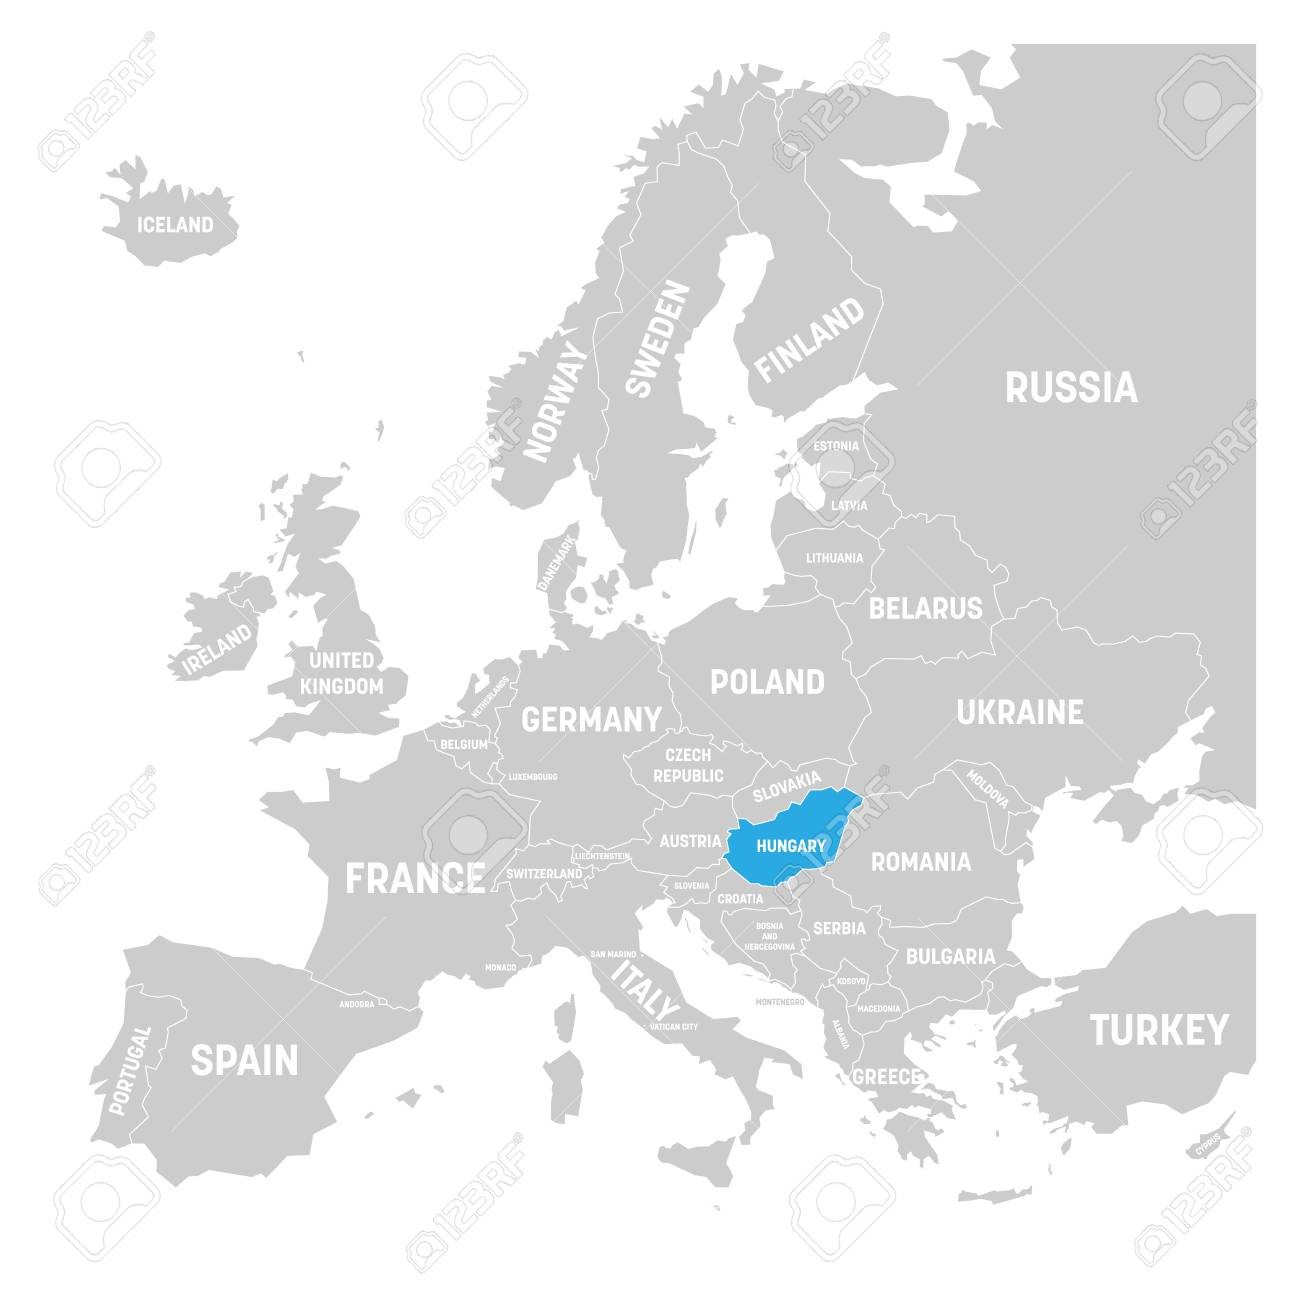 Hungary Political Map.Hungary Marked By Blue In Grey Political Map Of Europe Vector